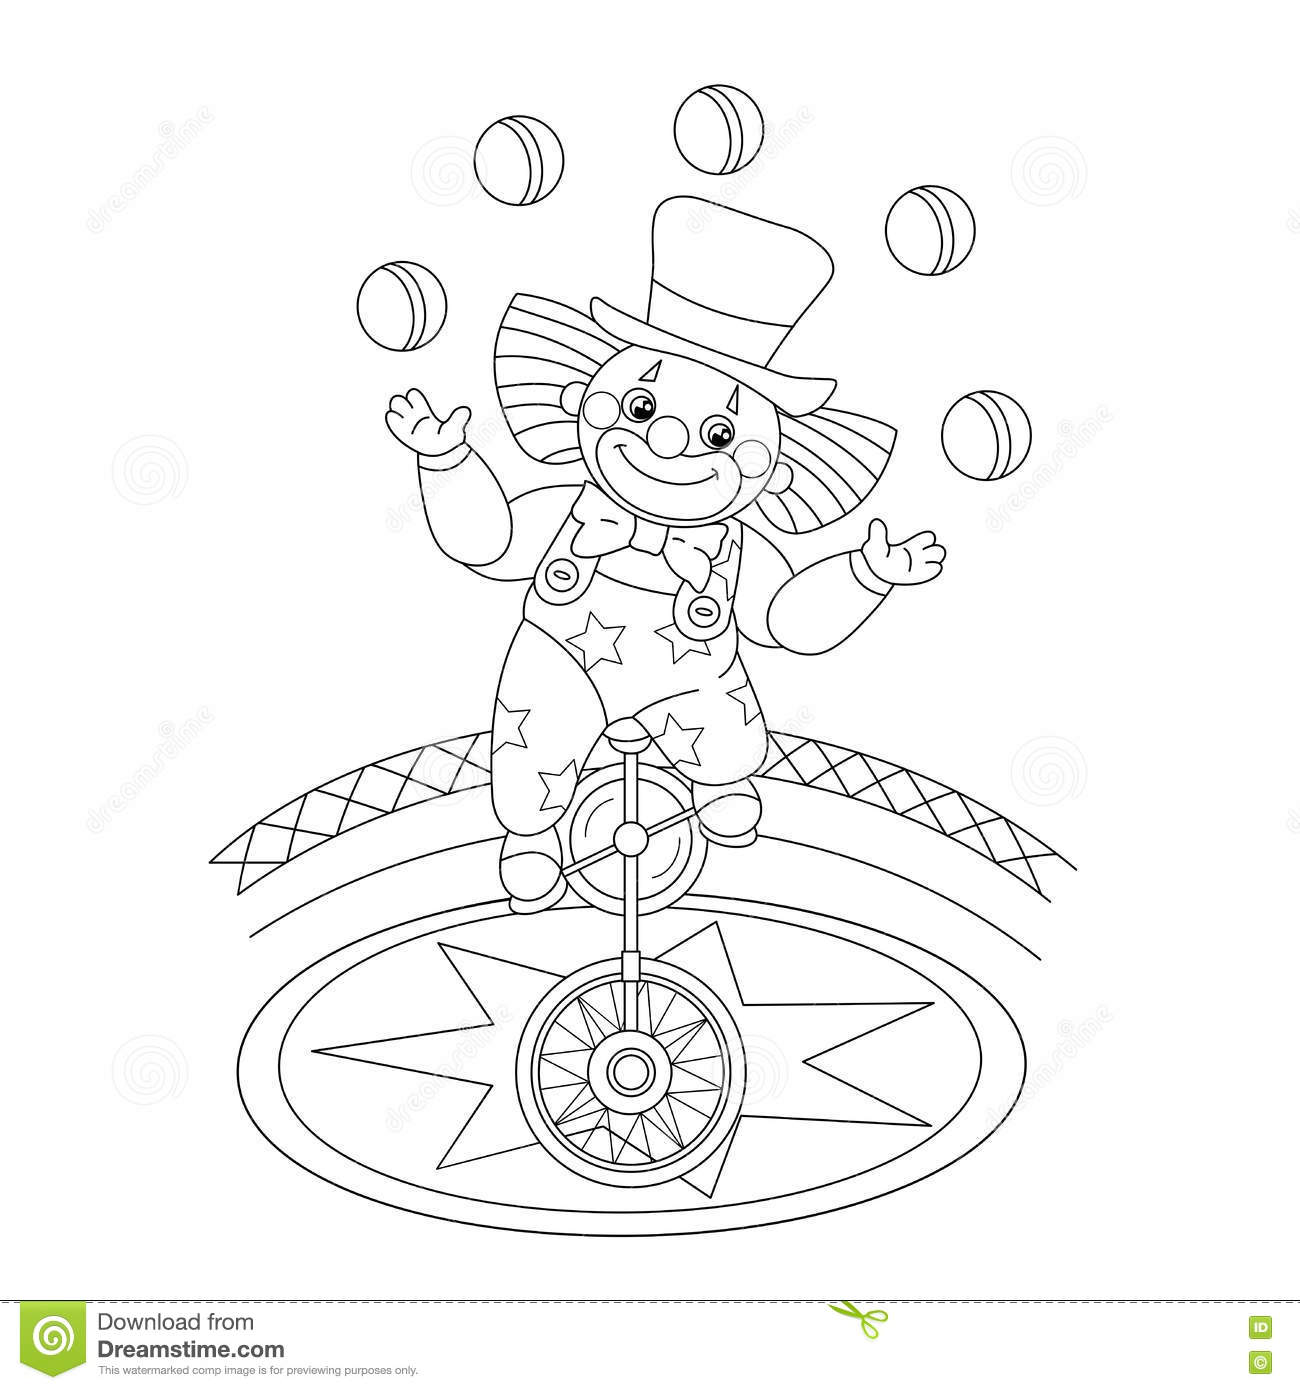 coloring page outline of juggling the balls stock vector